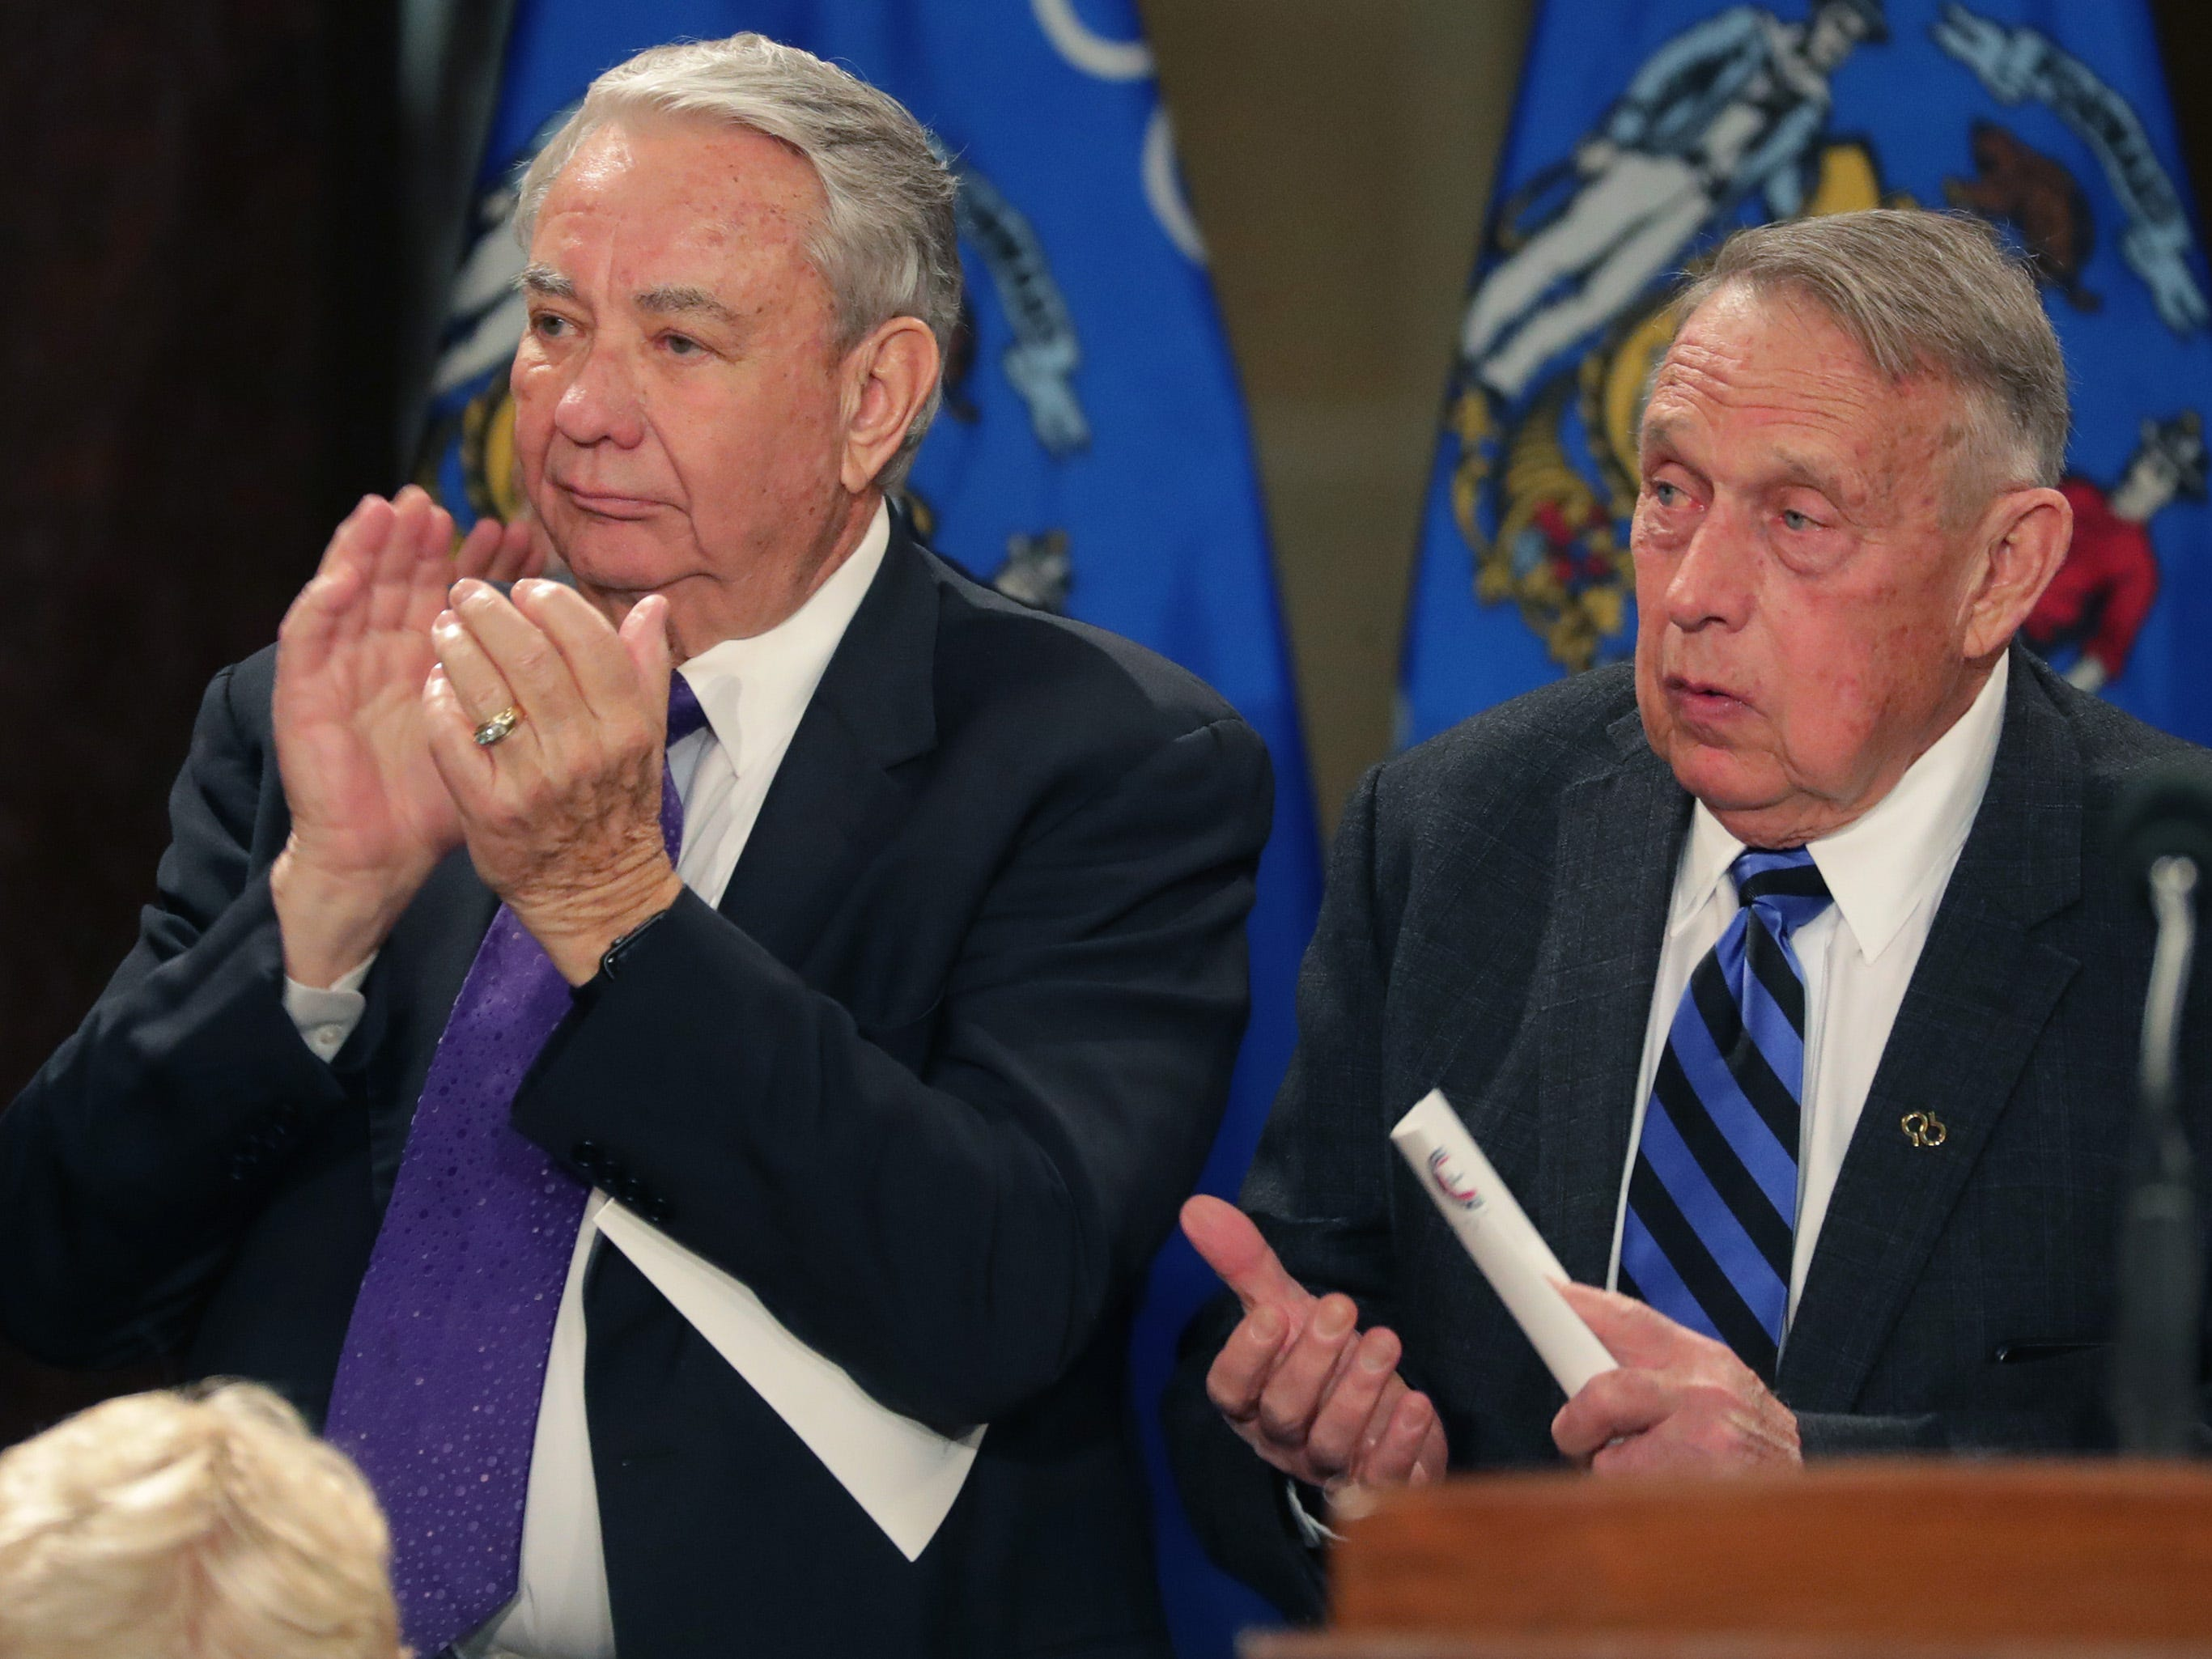 Former Govs. Tommy Thompson (left) and Martin Schreiber are shown during the ceremony.